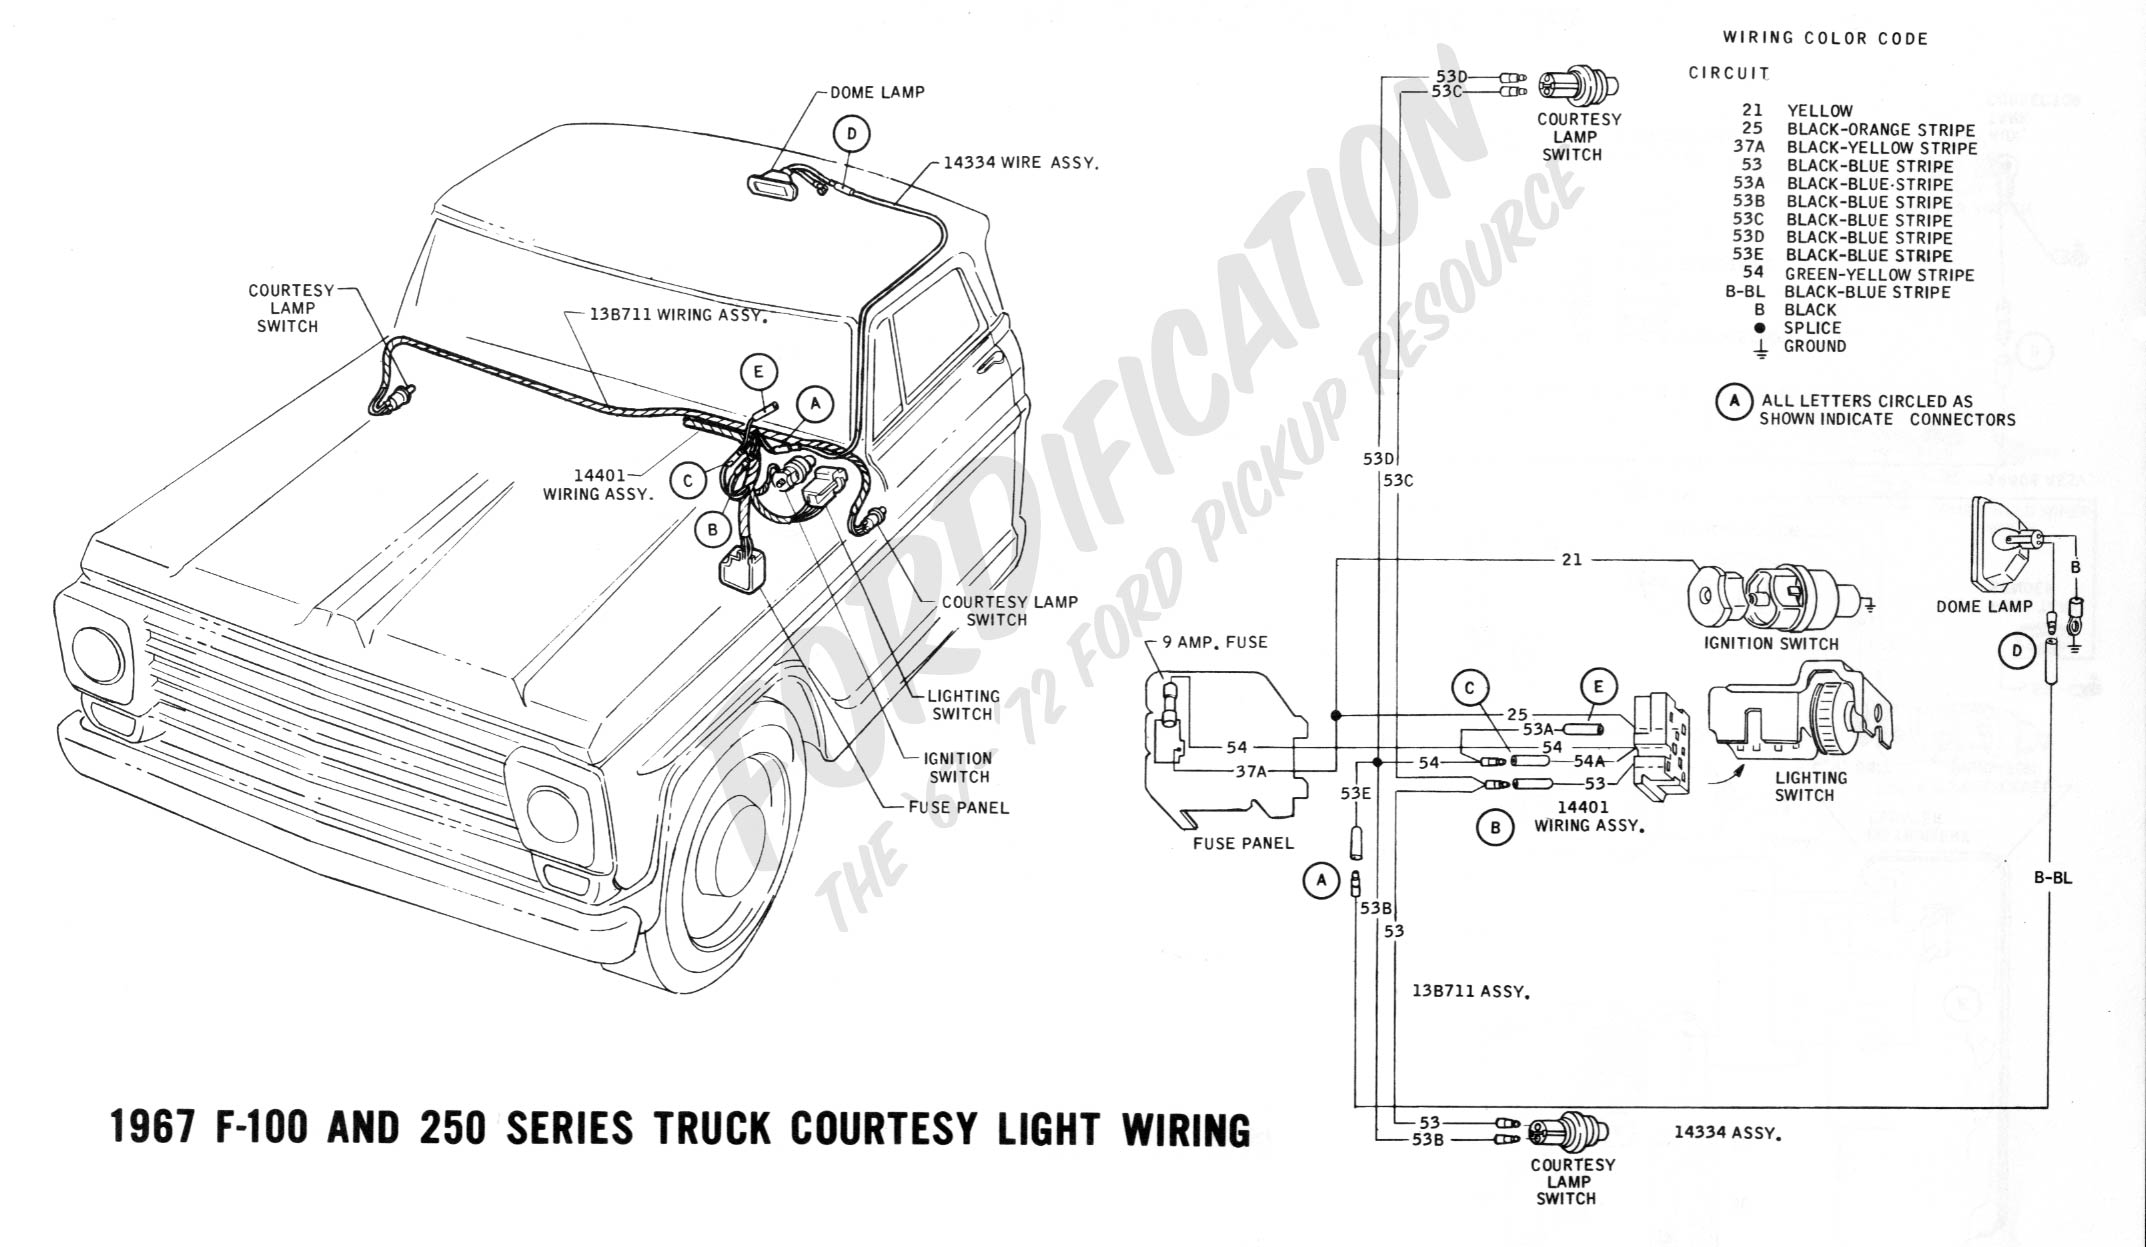 1967 Camaro Wiring Diagram Voltage Regulator Starting Know About 1982 Charging System Ford Truck Technical Drawings And Schematics Section H